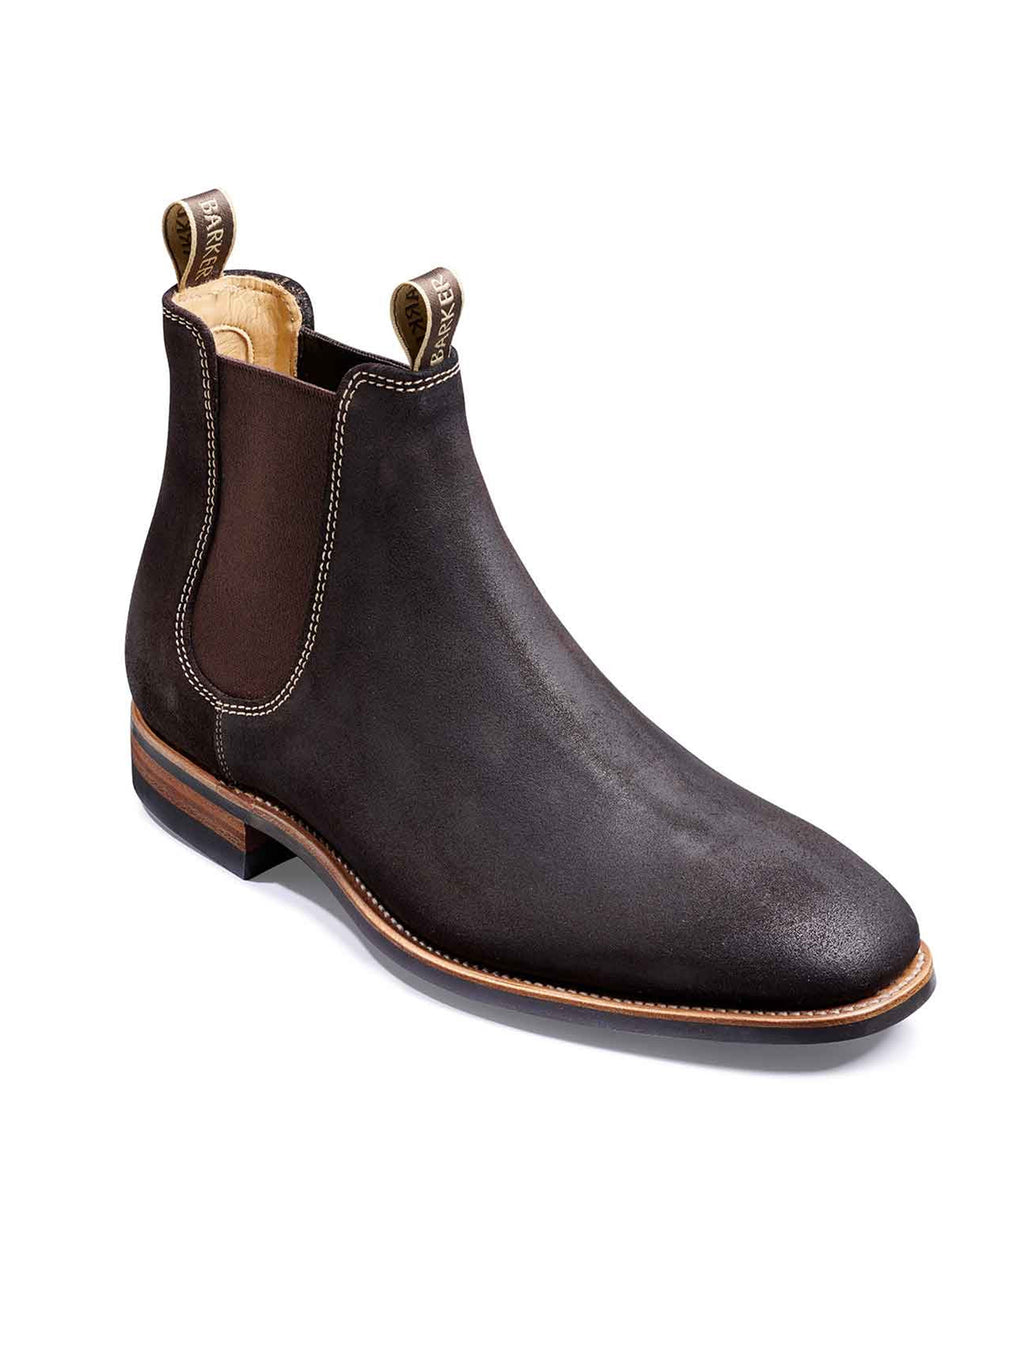 Barker Mansfield Choc Boots